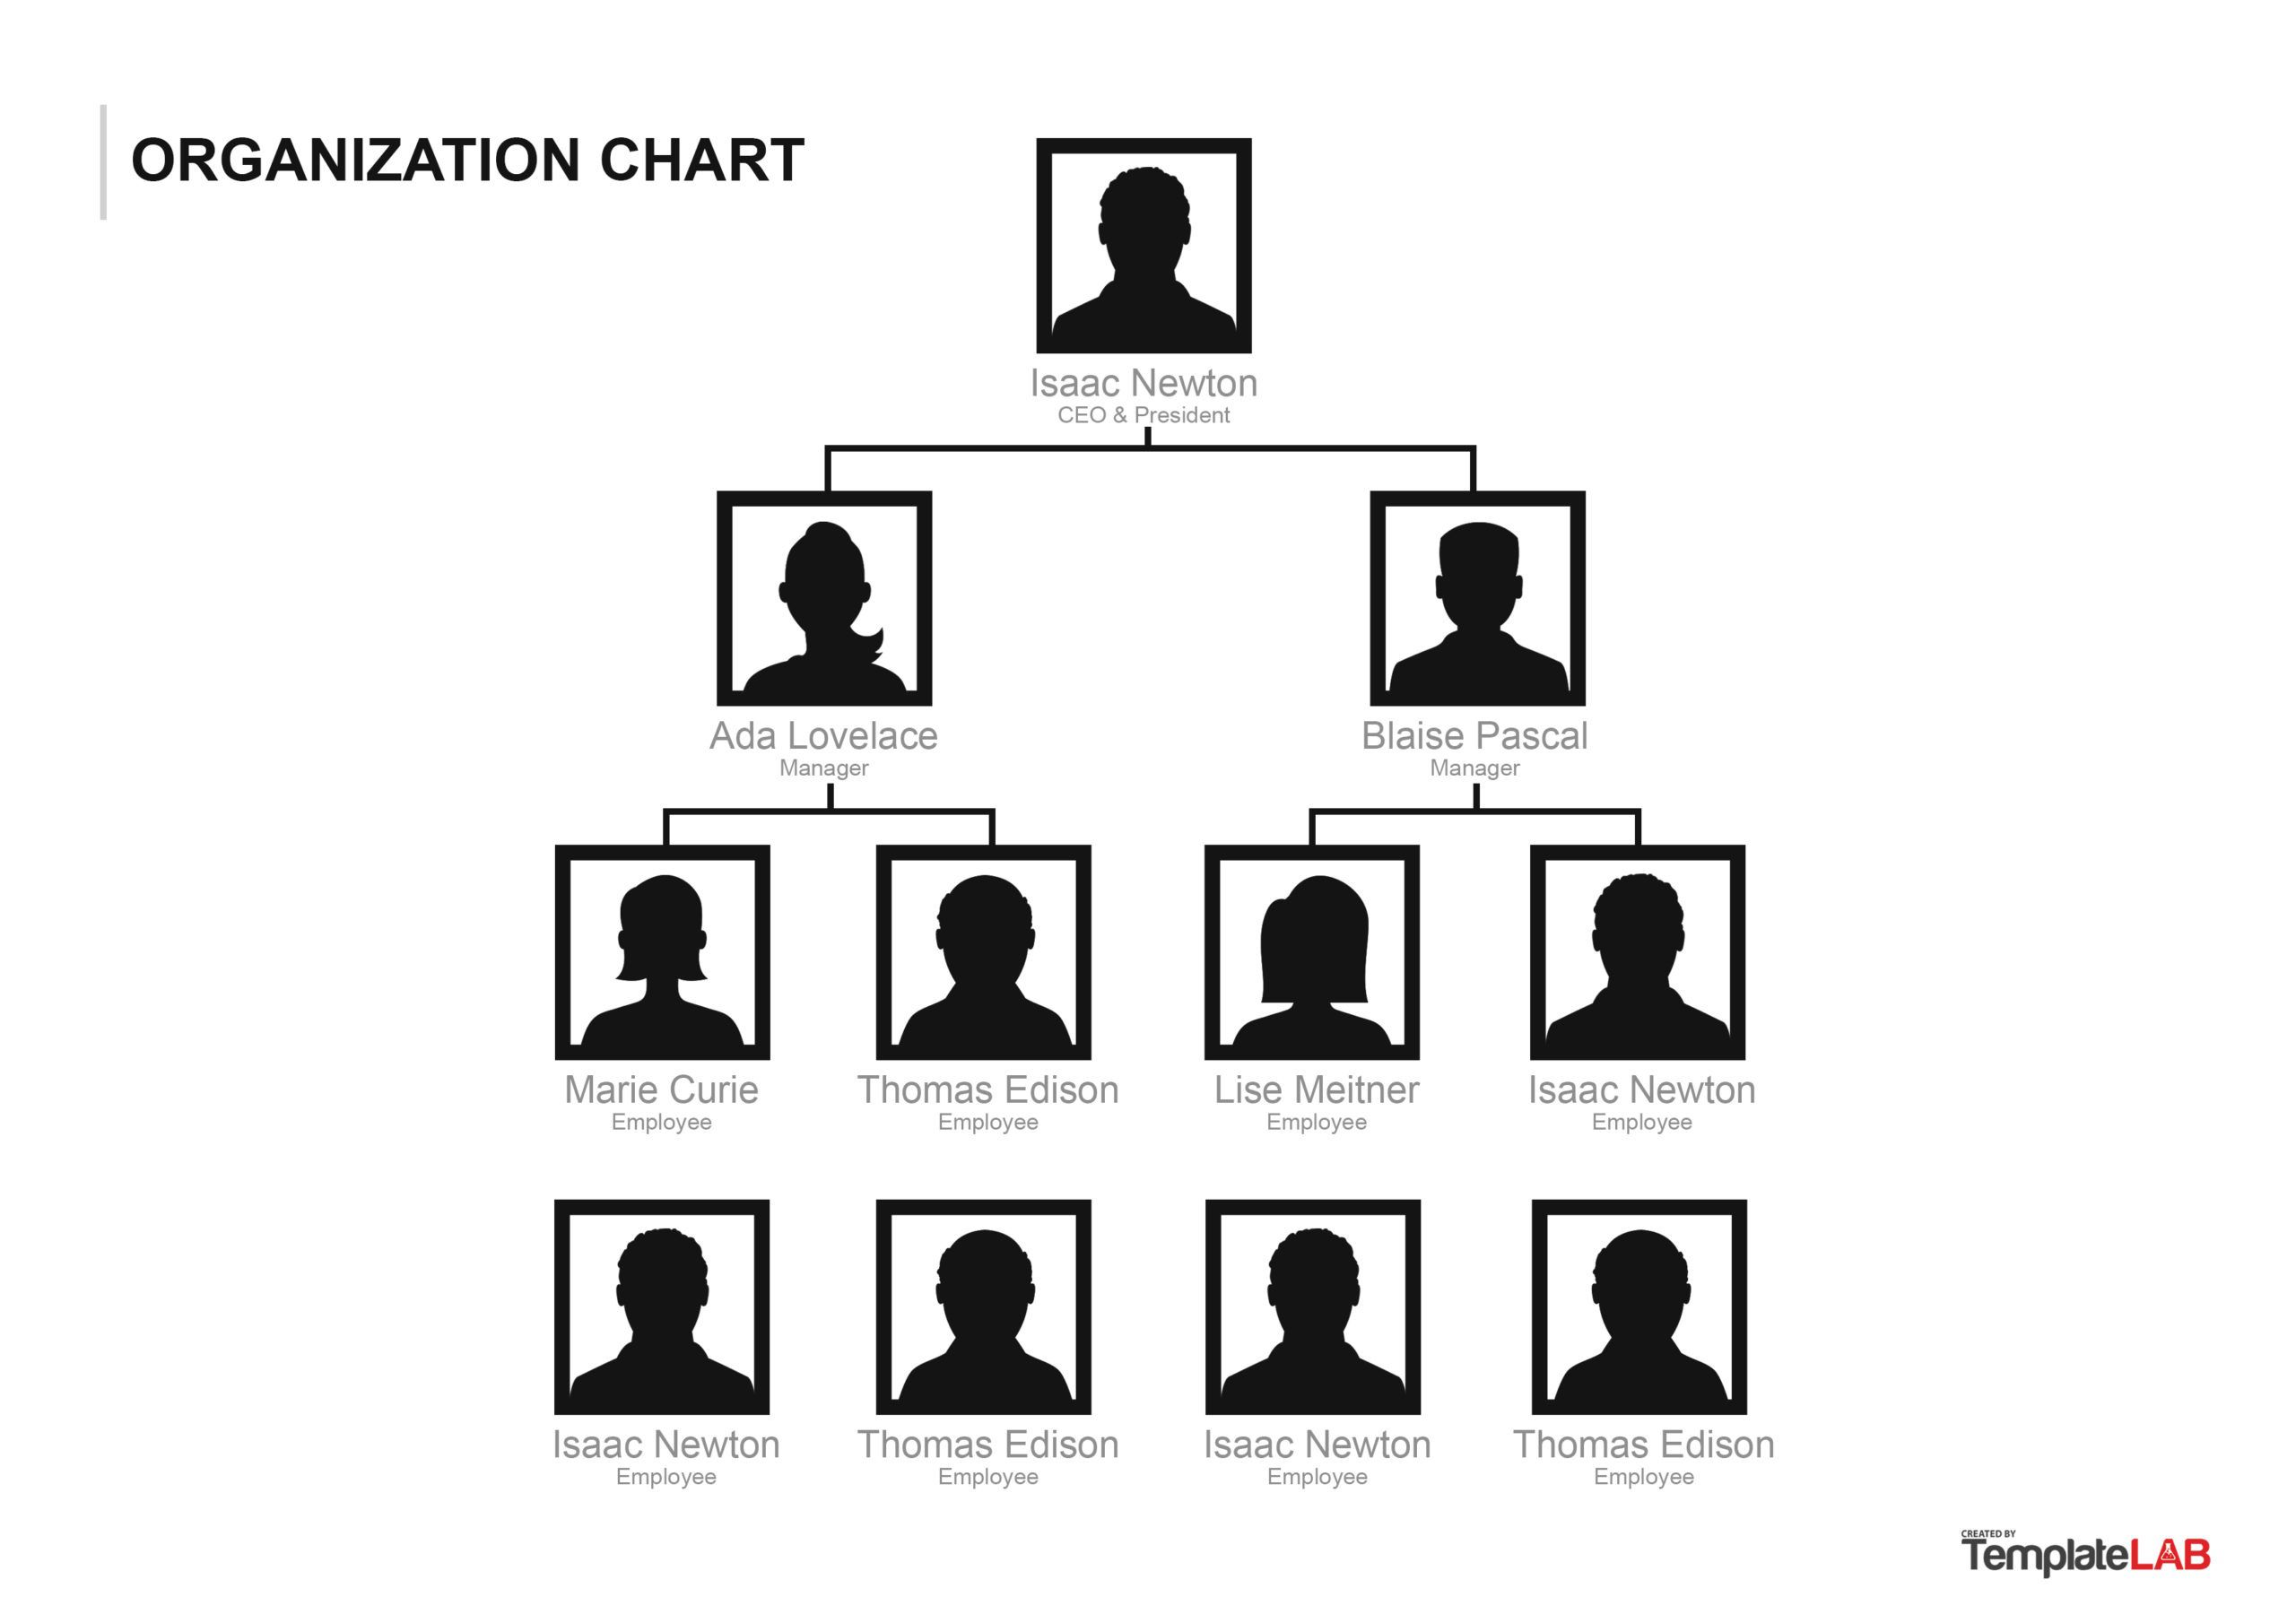 008 Formidable Organization Chart Template Excel Download High Def  Org Organizational Format InFull